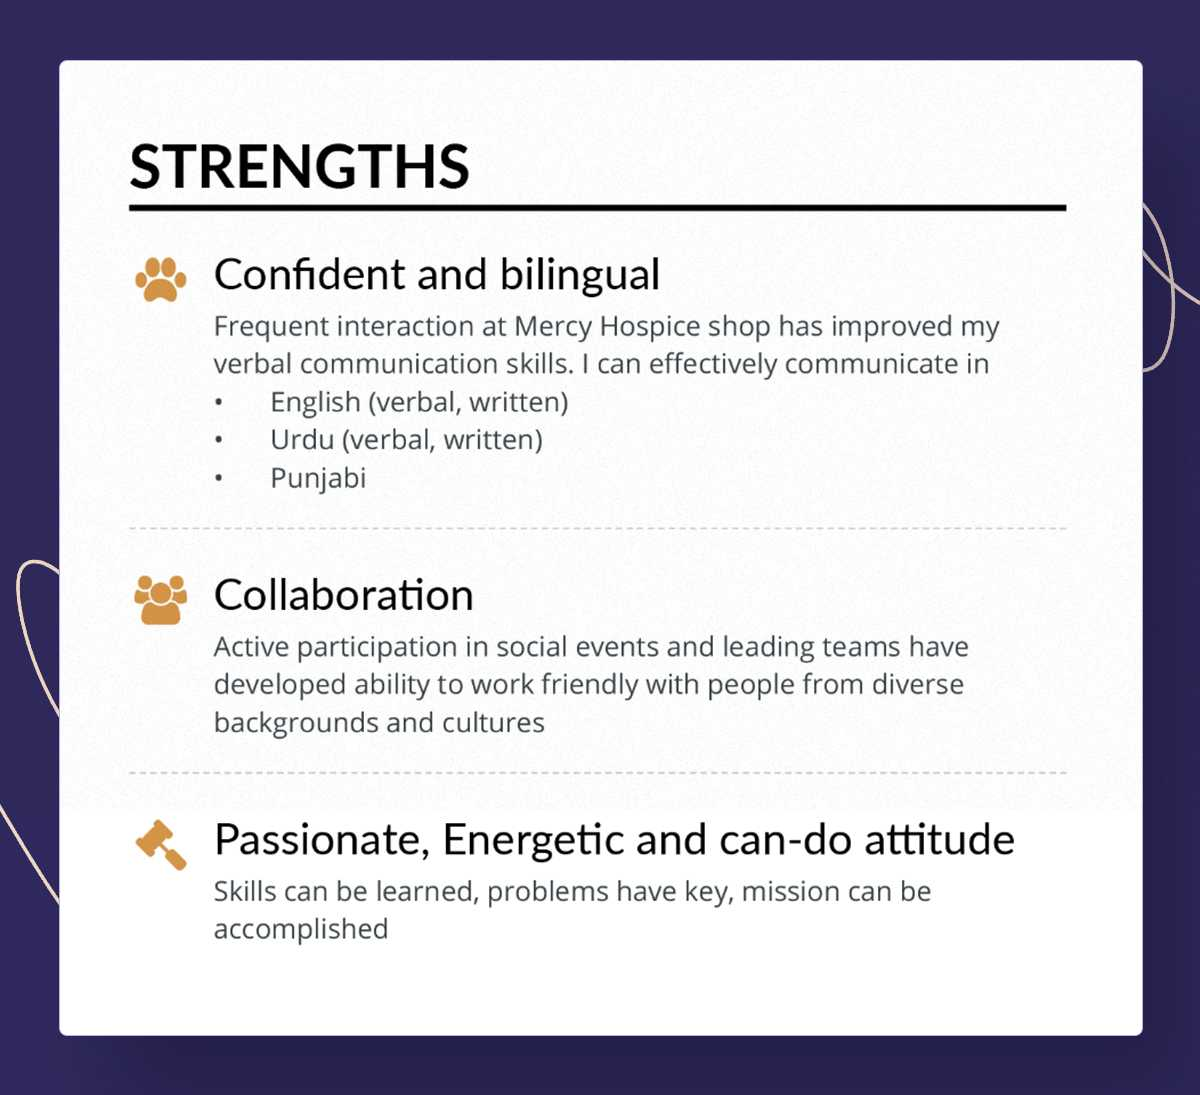 Engineering strengths example